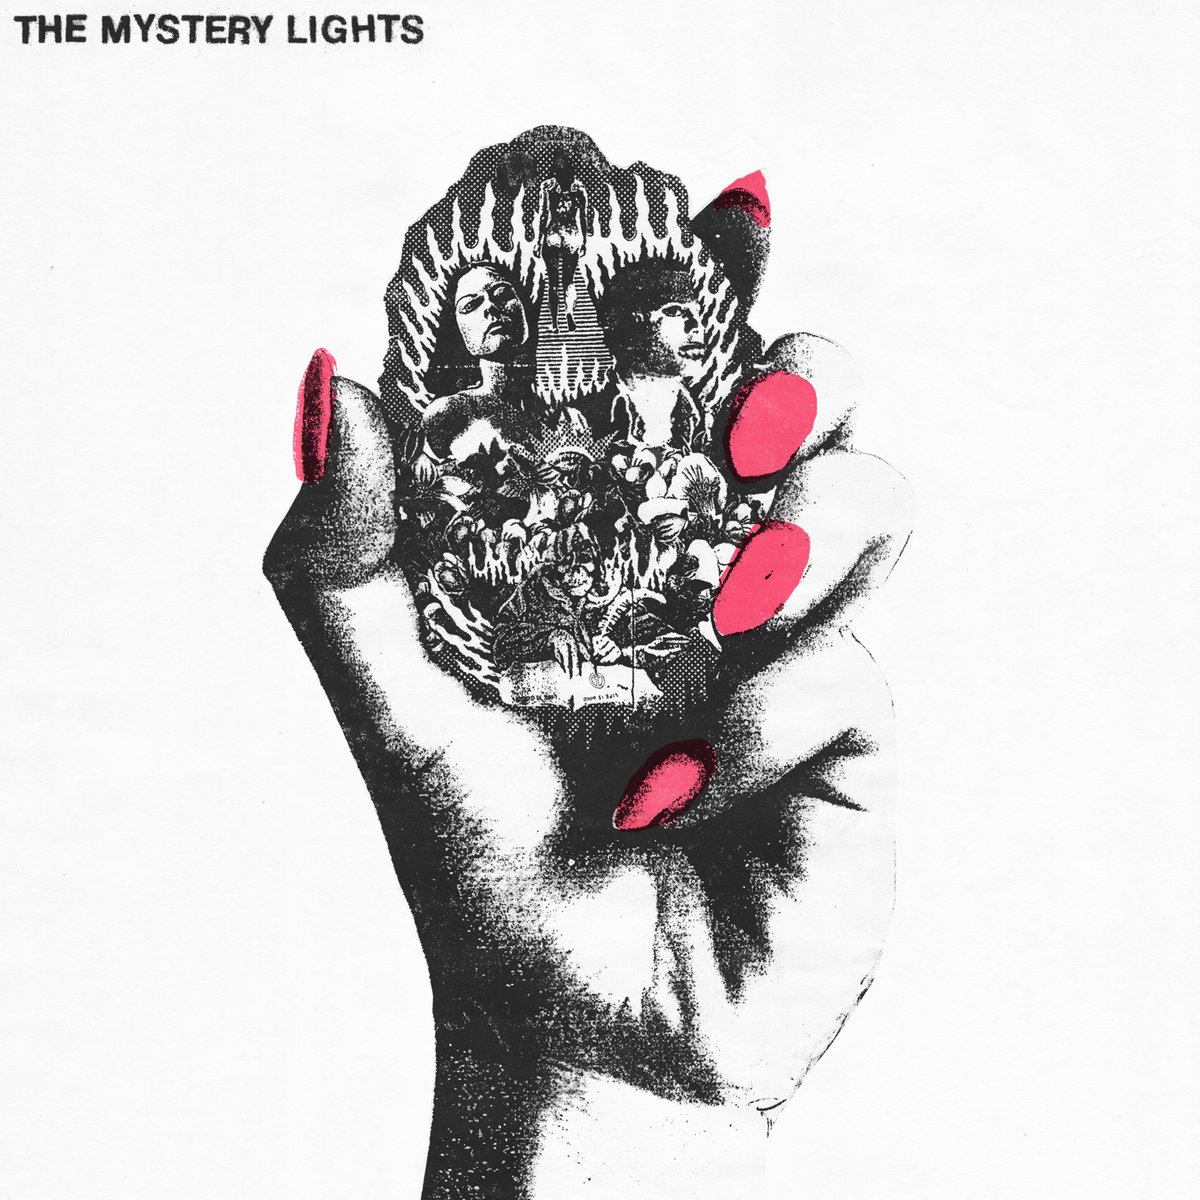 The Mystery Lights